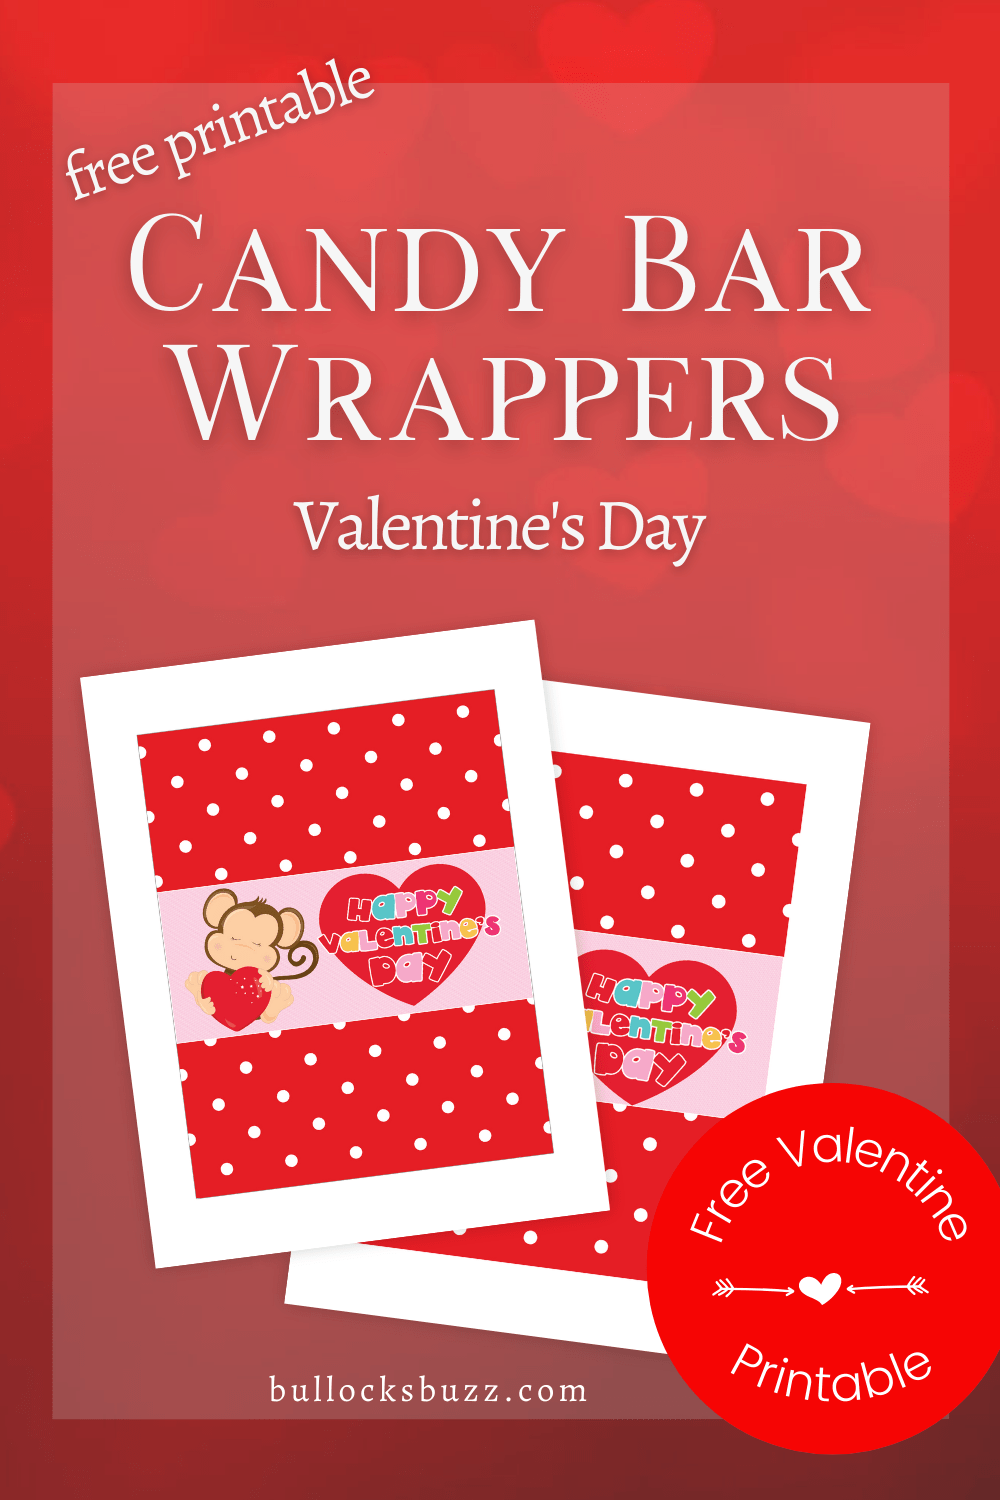 Turn ordinary candy bars into an extra sweet treat this Valentine's Day with these free printable candy bar wrappers! #printables #valentinesday #printablevalentines #printablecandybarwrappers